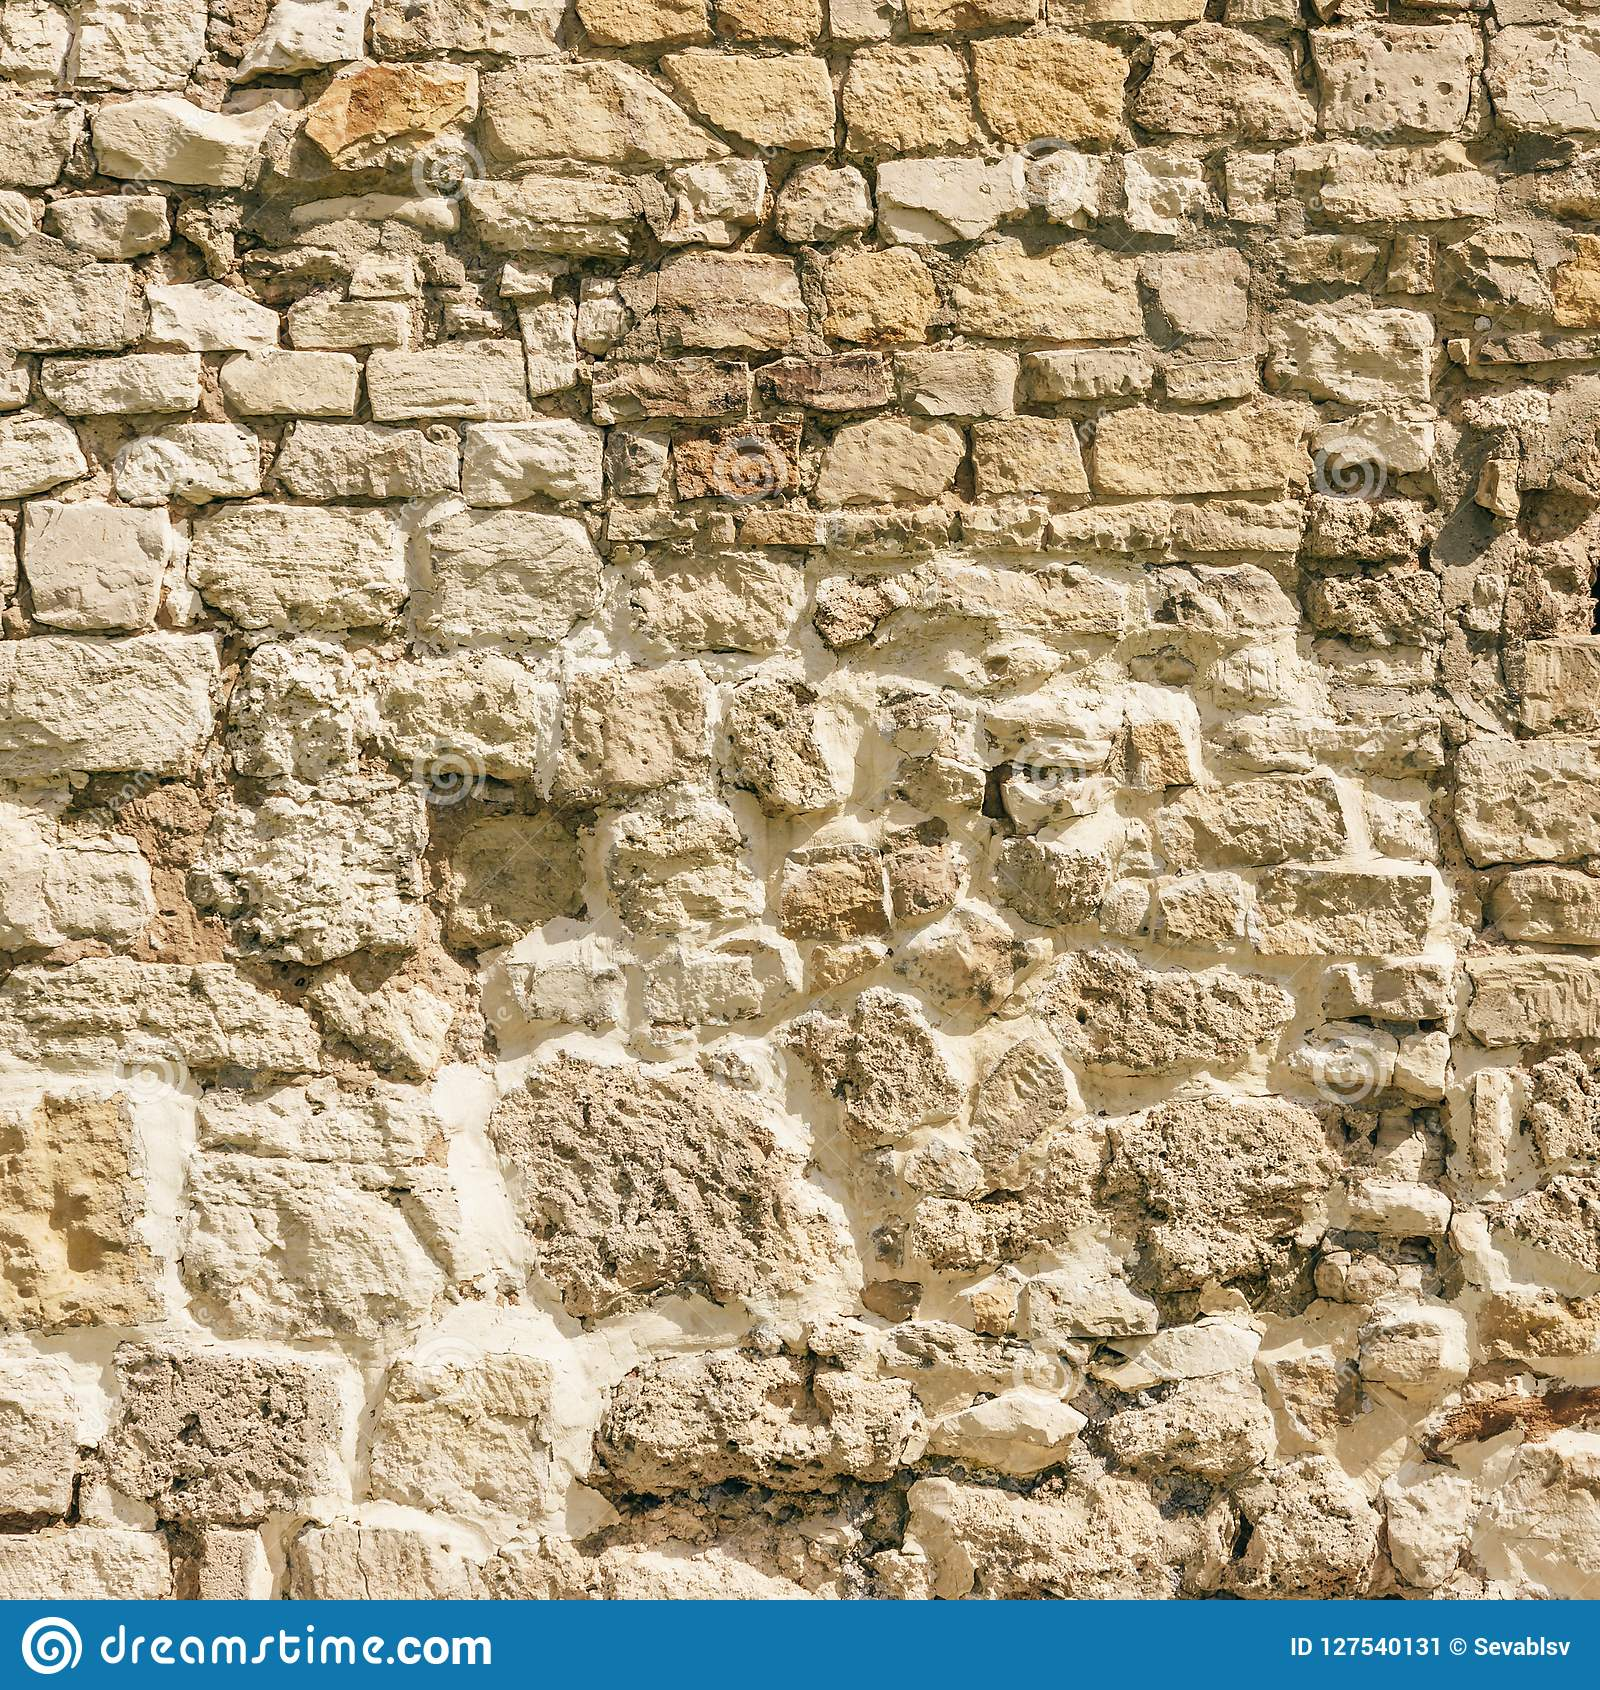 Background of Weathered Stone Wall.